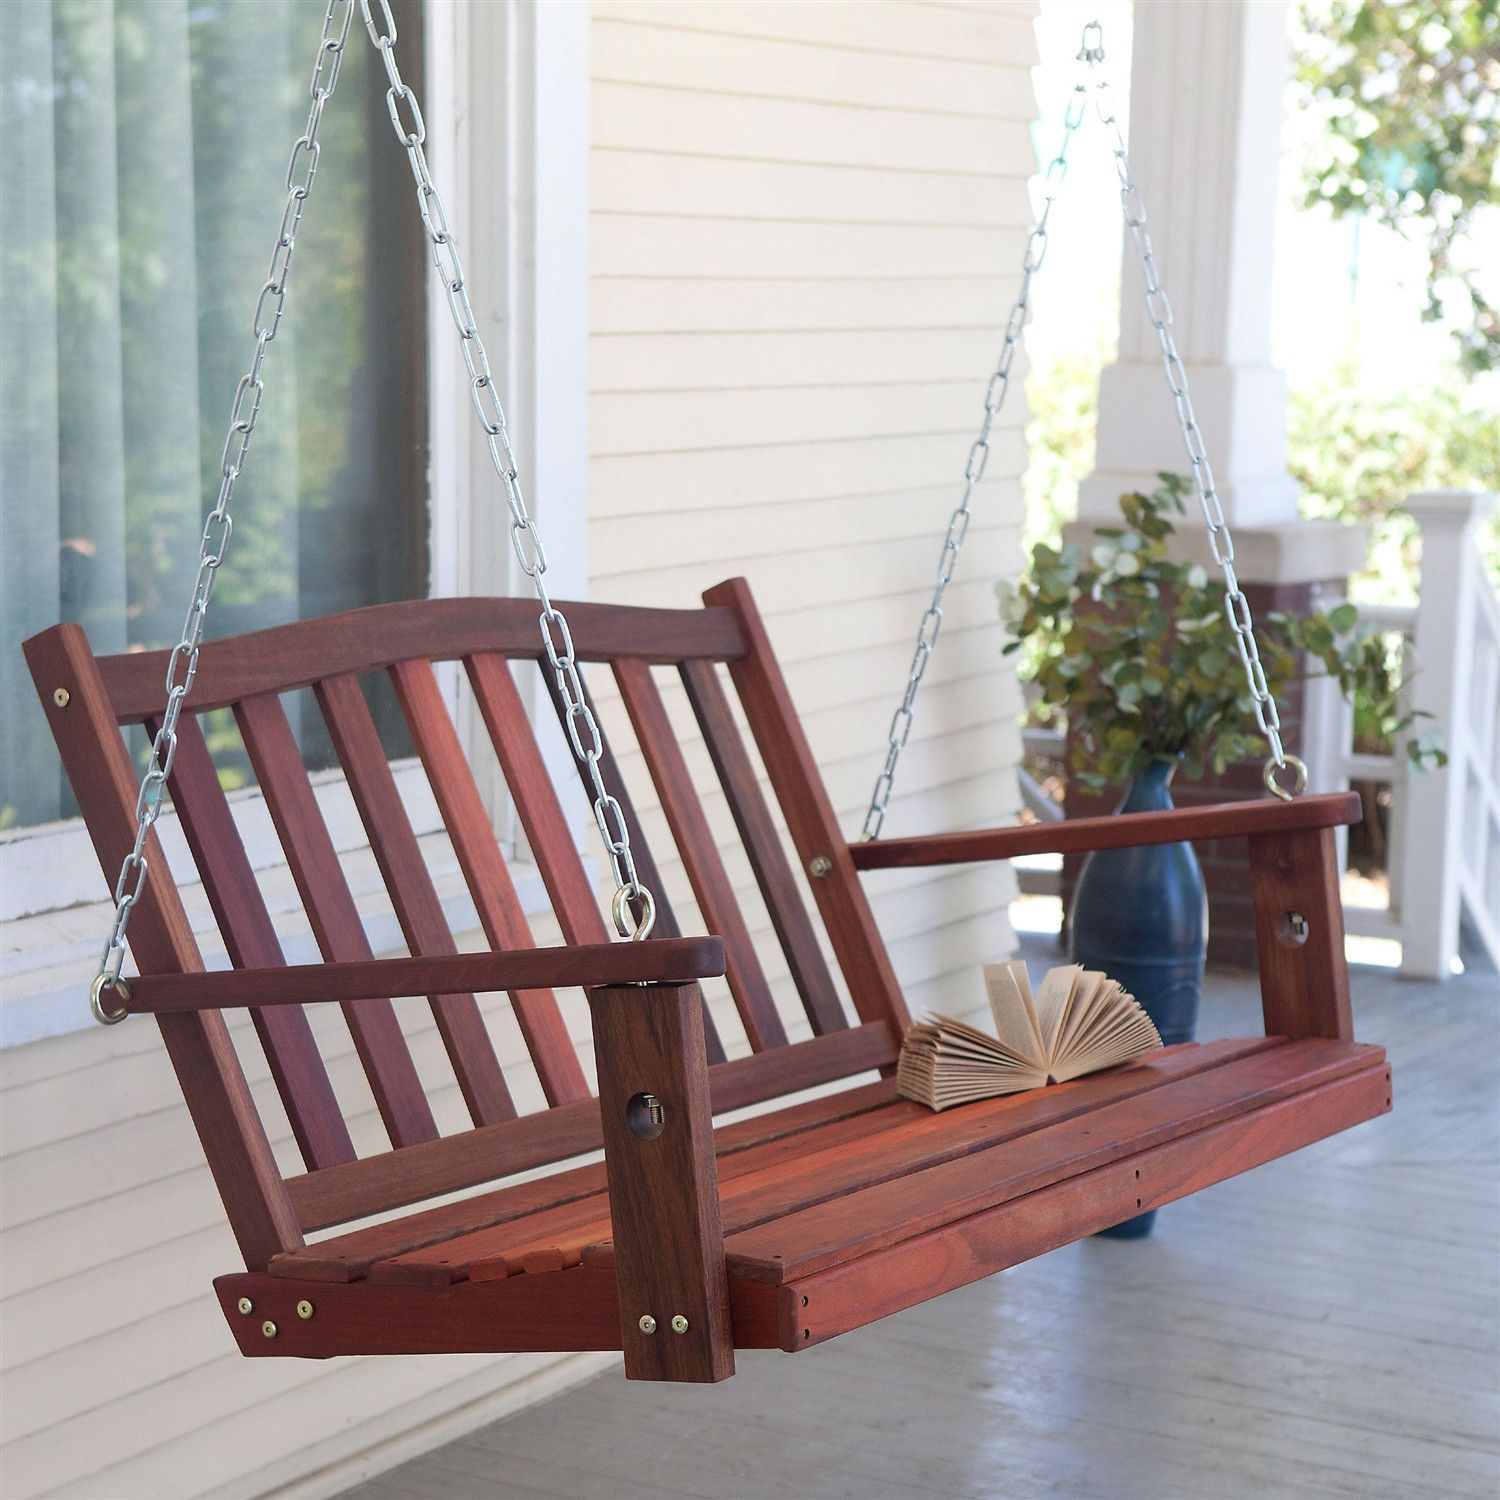 4 Ft Curved Back Porch Swing Bench Chair With Comfort Springs And Hanging Hooks With Images Porch Swing Swing Design Diy Porch Swing